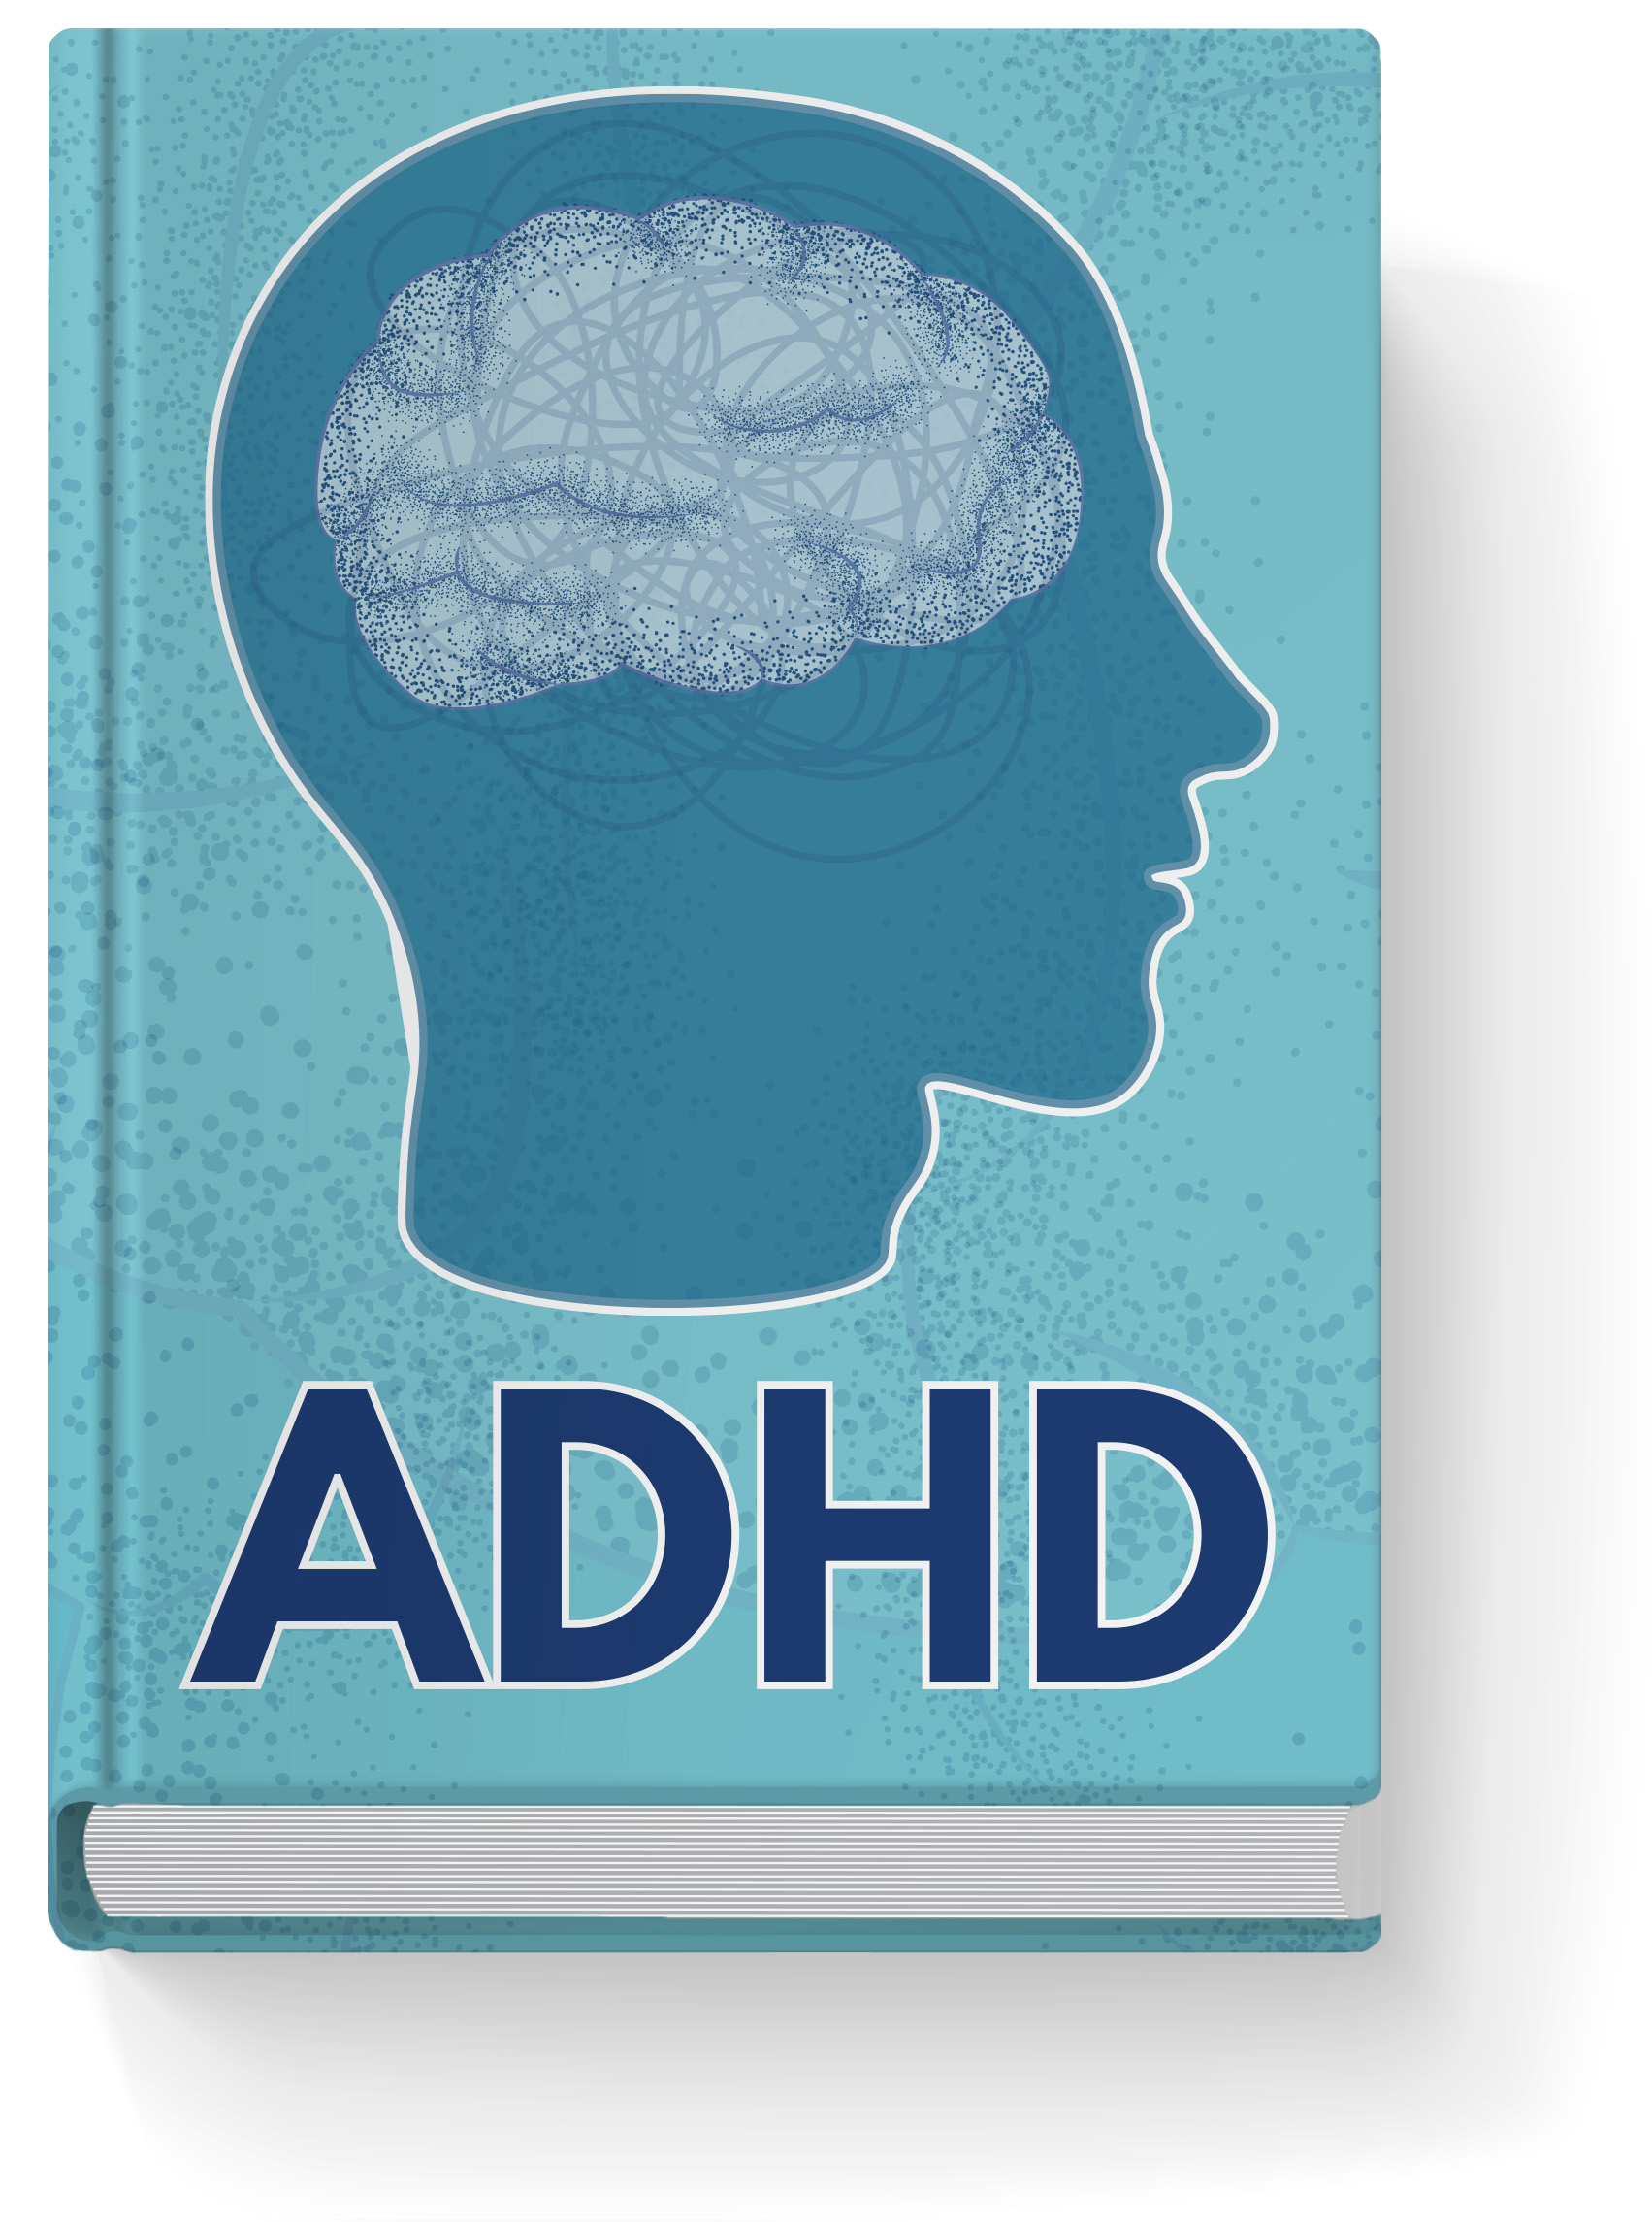 Visit our web catalog for books about ADHD.